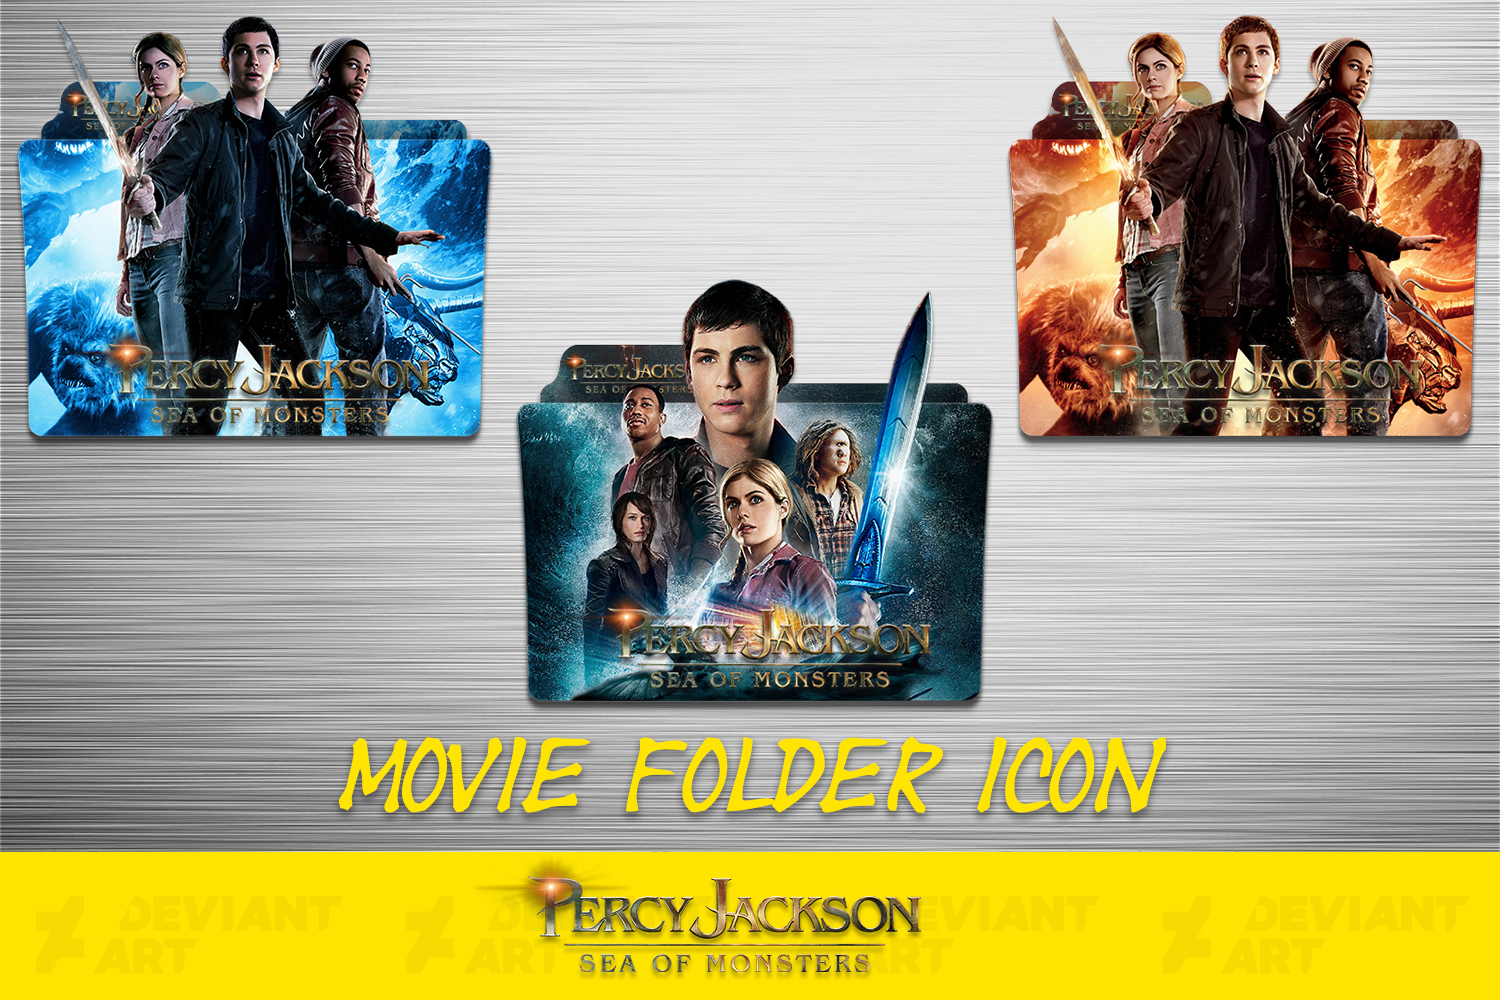 Percy Jackson Sea Of Monsters 2013 Icon Pack By Ahmternbrs60 On Deviantart